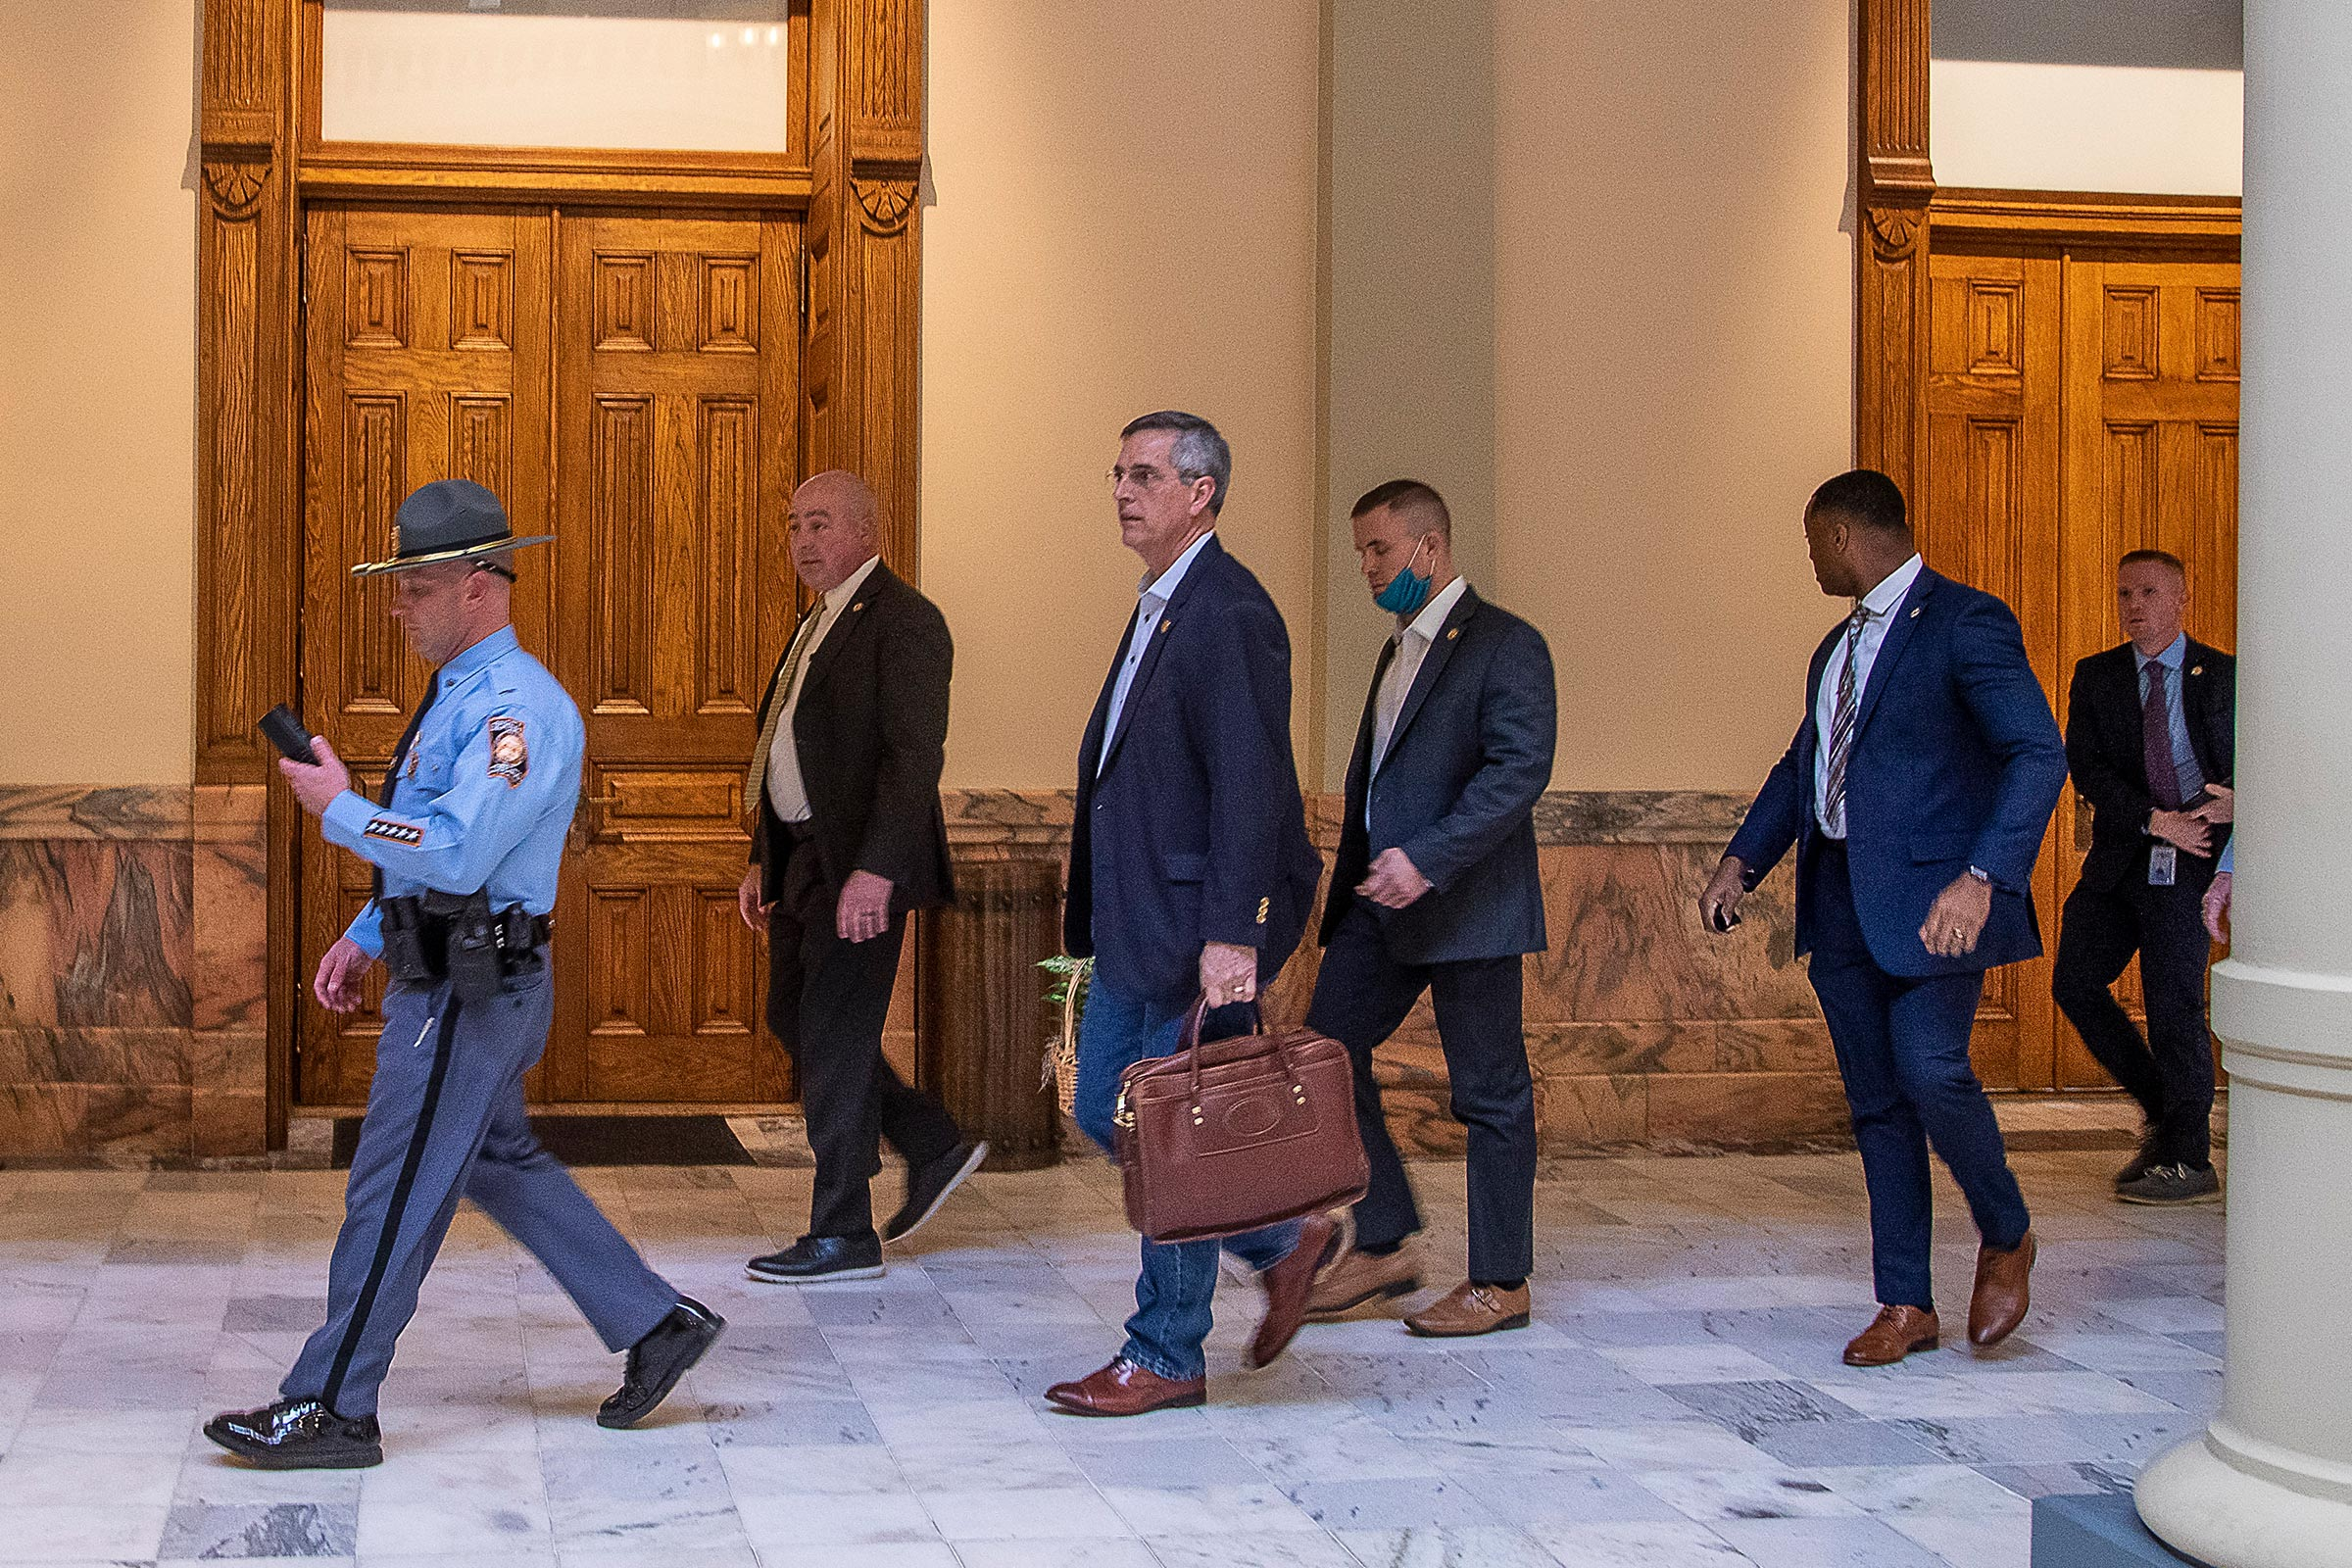 Lead by a Georgia State Trooper, Georgia Secretary of State Brad Raffensperger, center, exits the Georgia State Capitol building after hearing reports of threats, in Atlanta, Jan. 6, 2021.